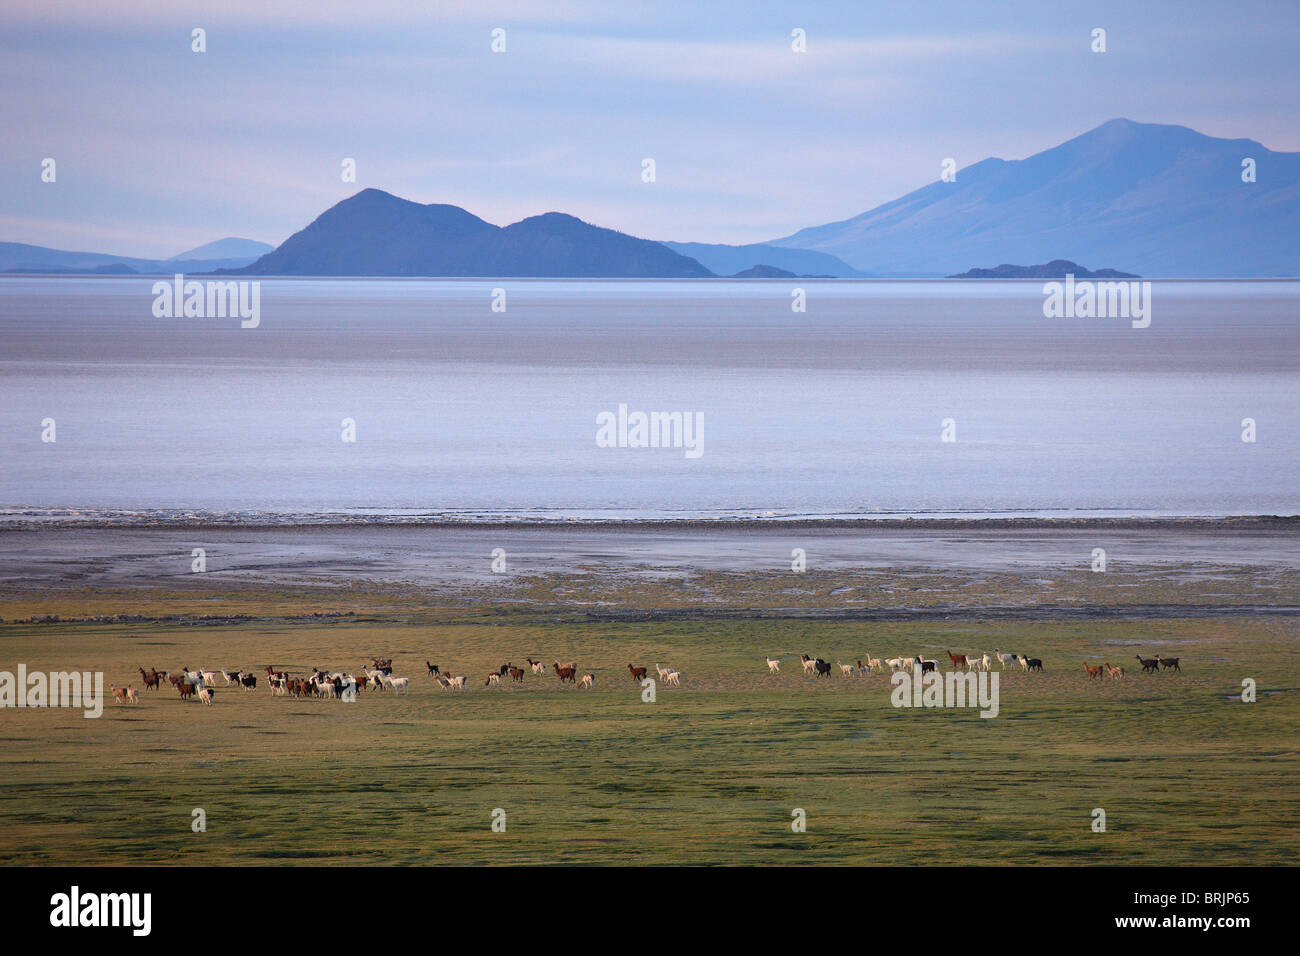 a herd of Llamas on the edge of the Salar de Uyuni, Bolivia - Stock Image